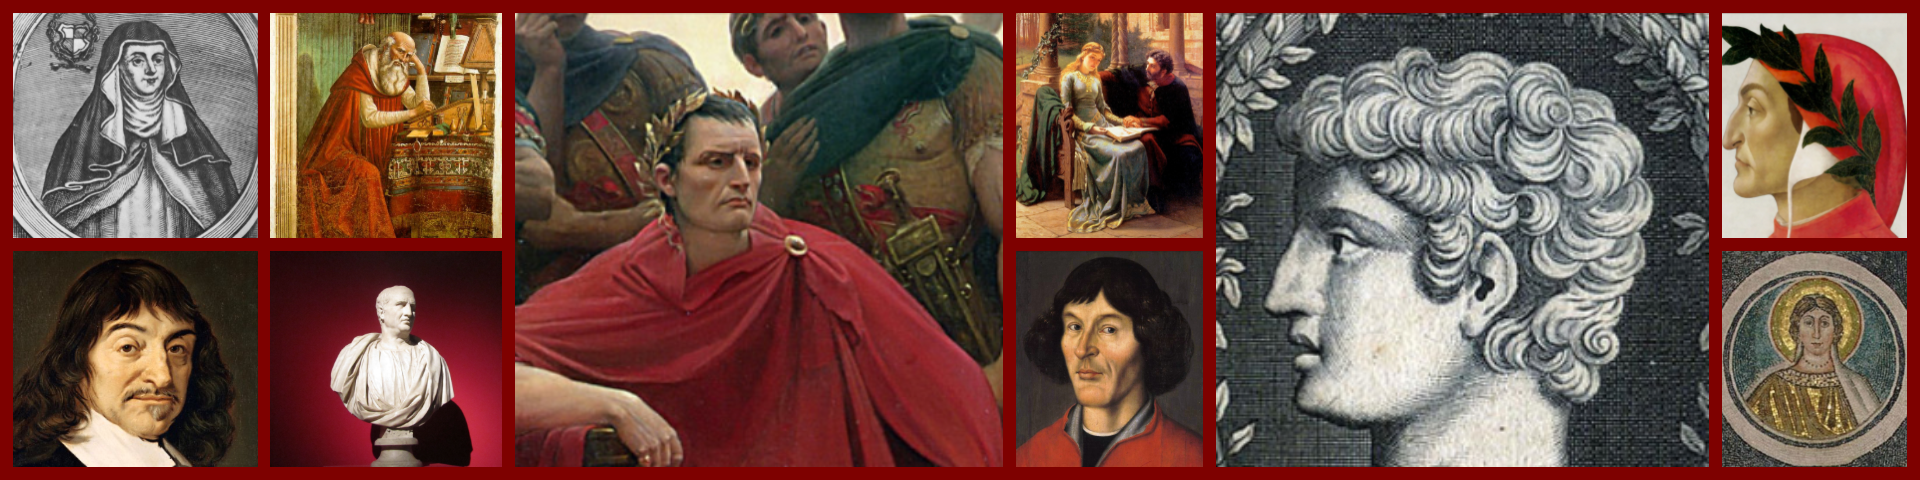 From the left: Hroswitha, Hieronymus, Descartes, Cicero, Caesar, Heloise and Abelard, Copernicus, Nepos, DaNTE, ST. PERPETUA